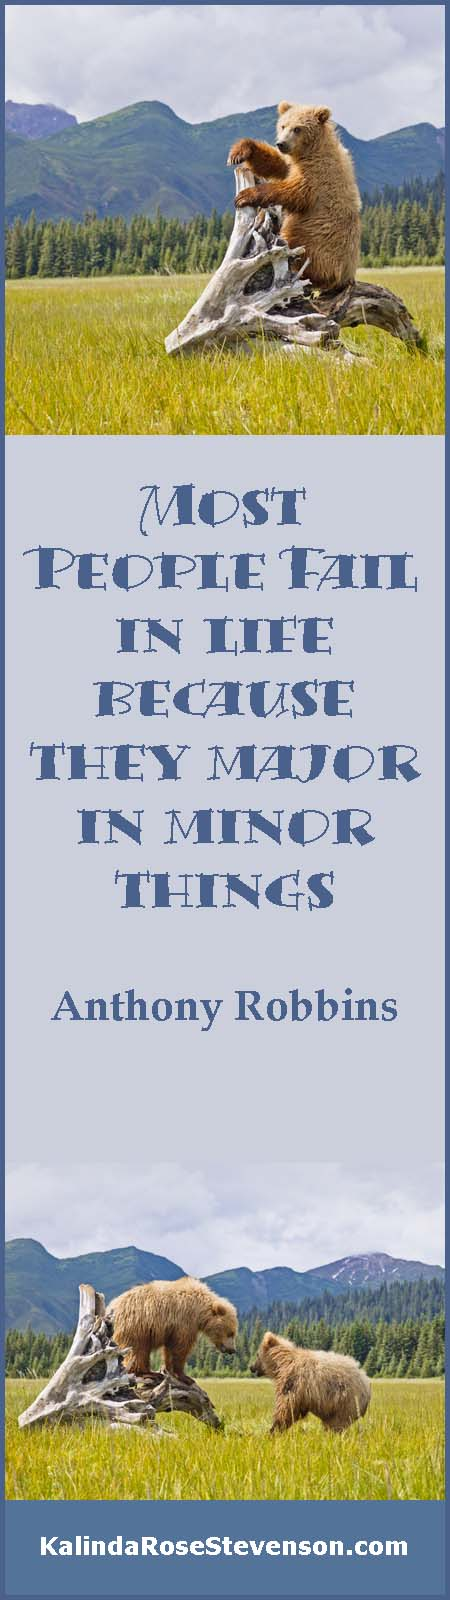 Anthony Robbins Major in Minors